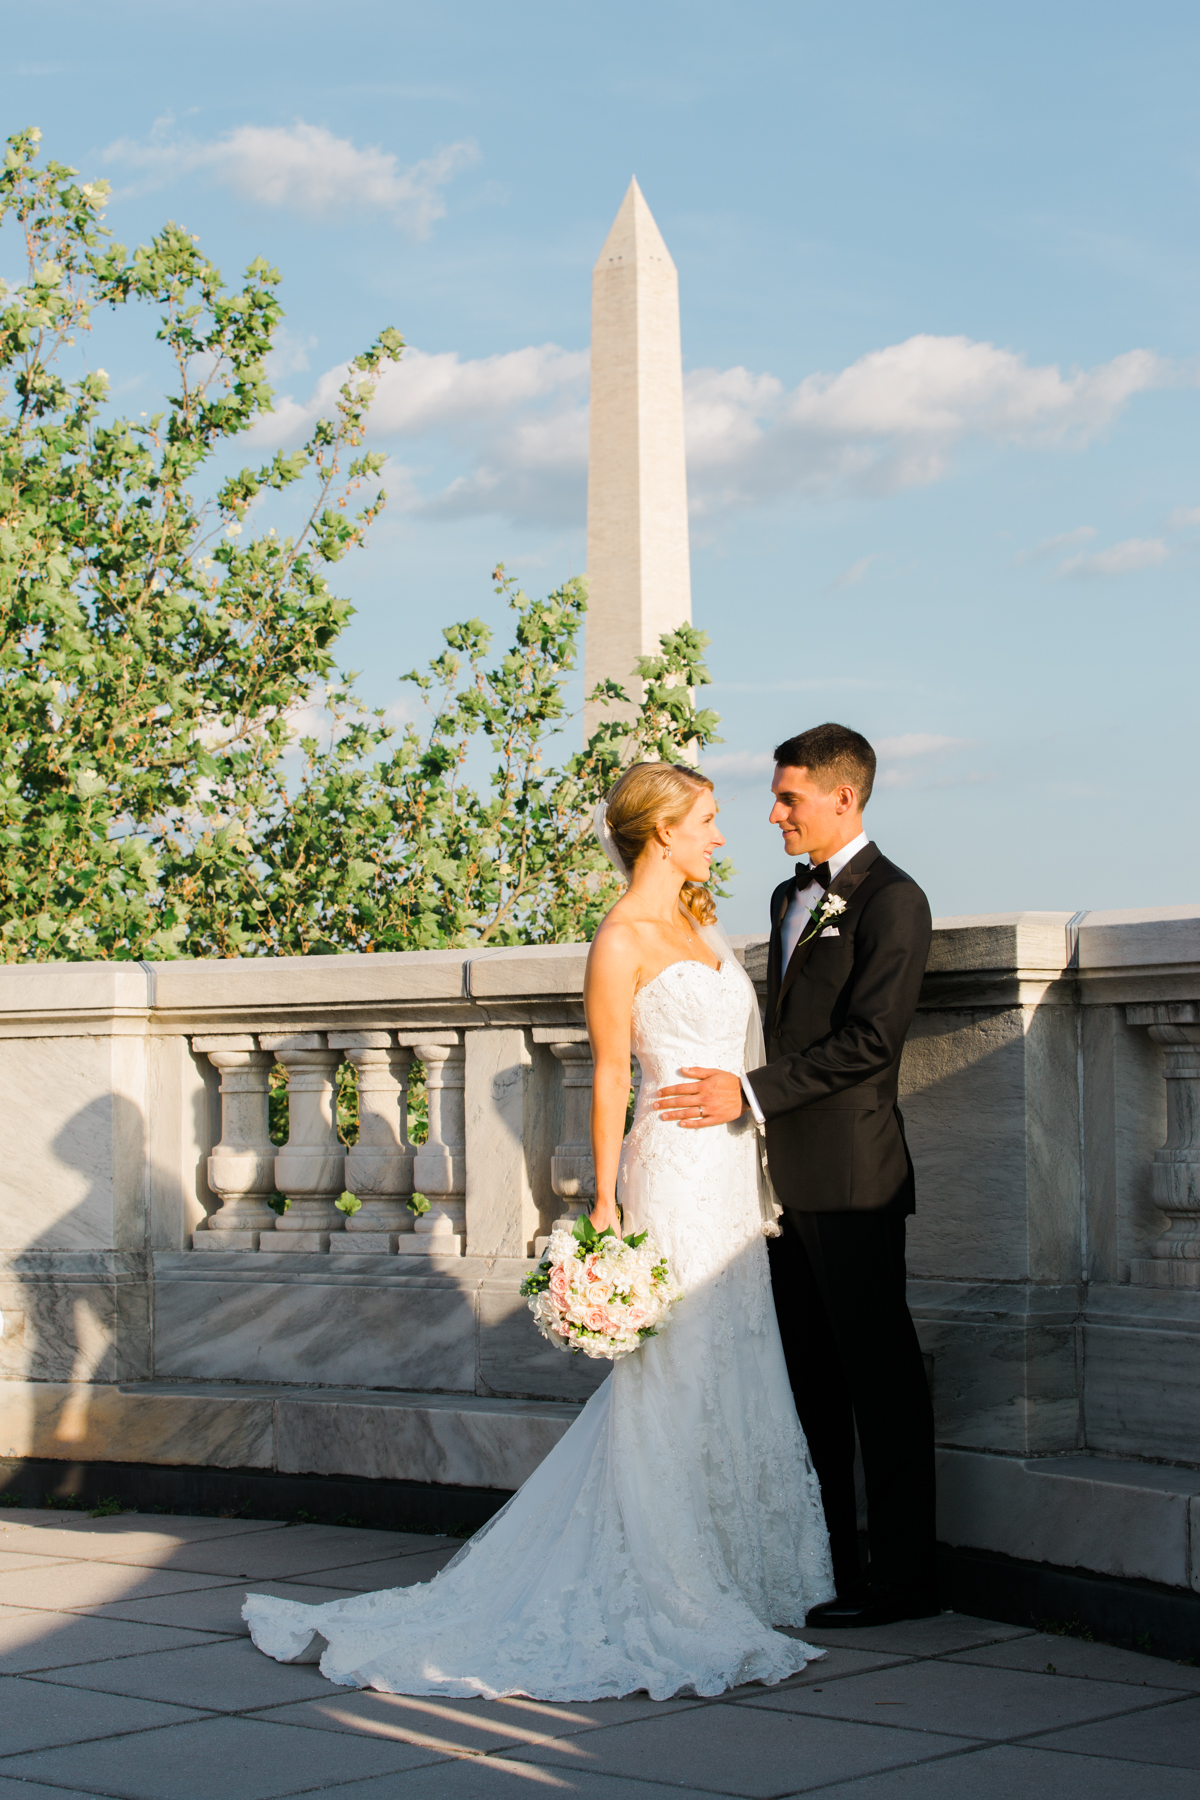 DAR-Wedding-DC-Vnessphotography-47.JPG